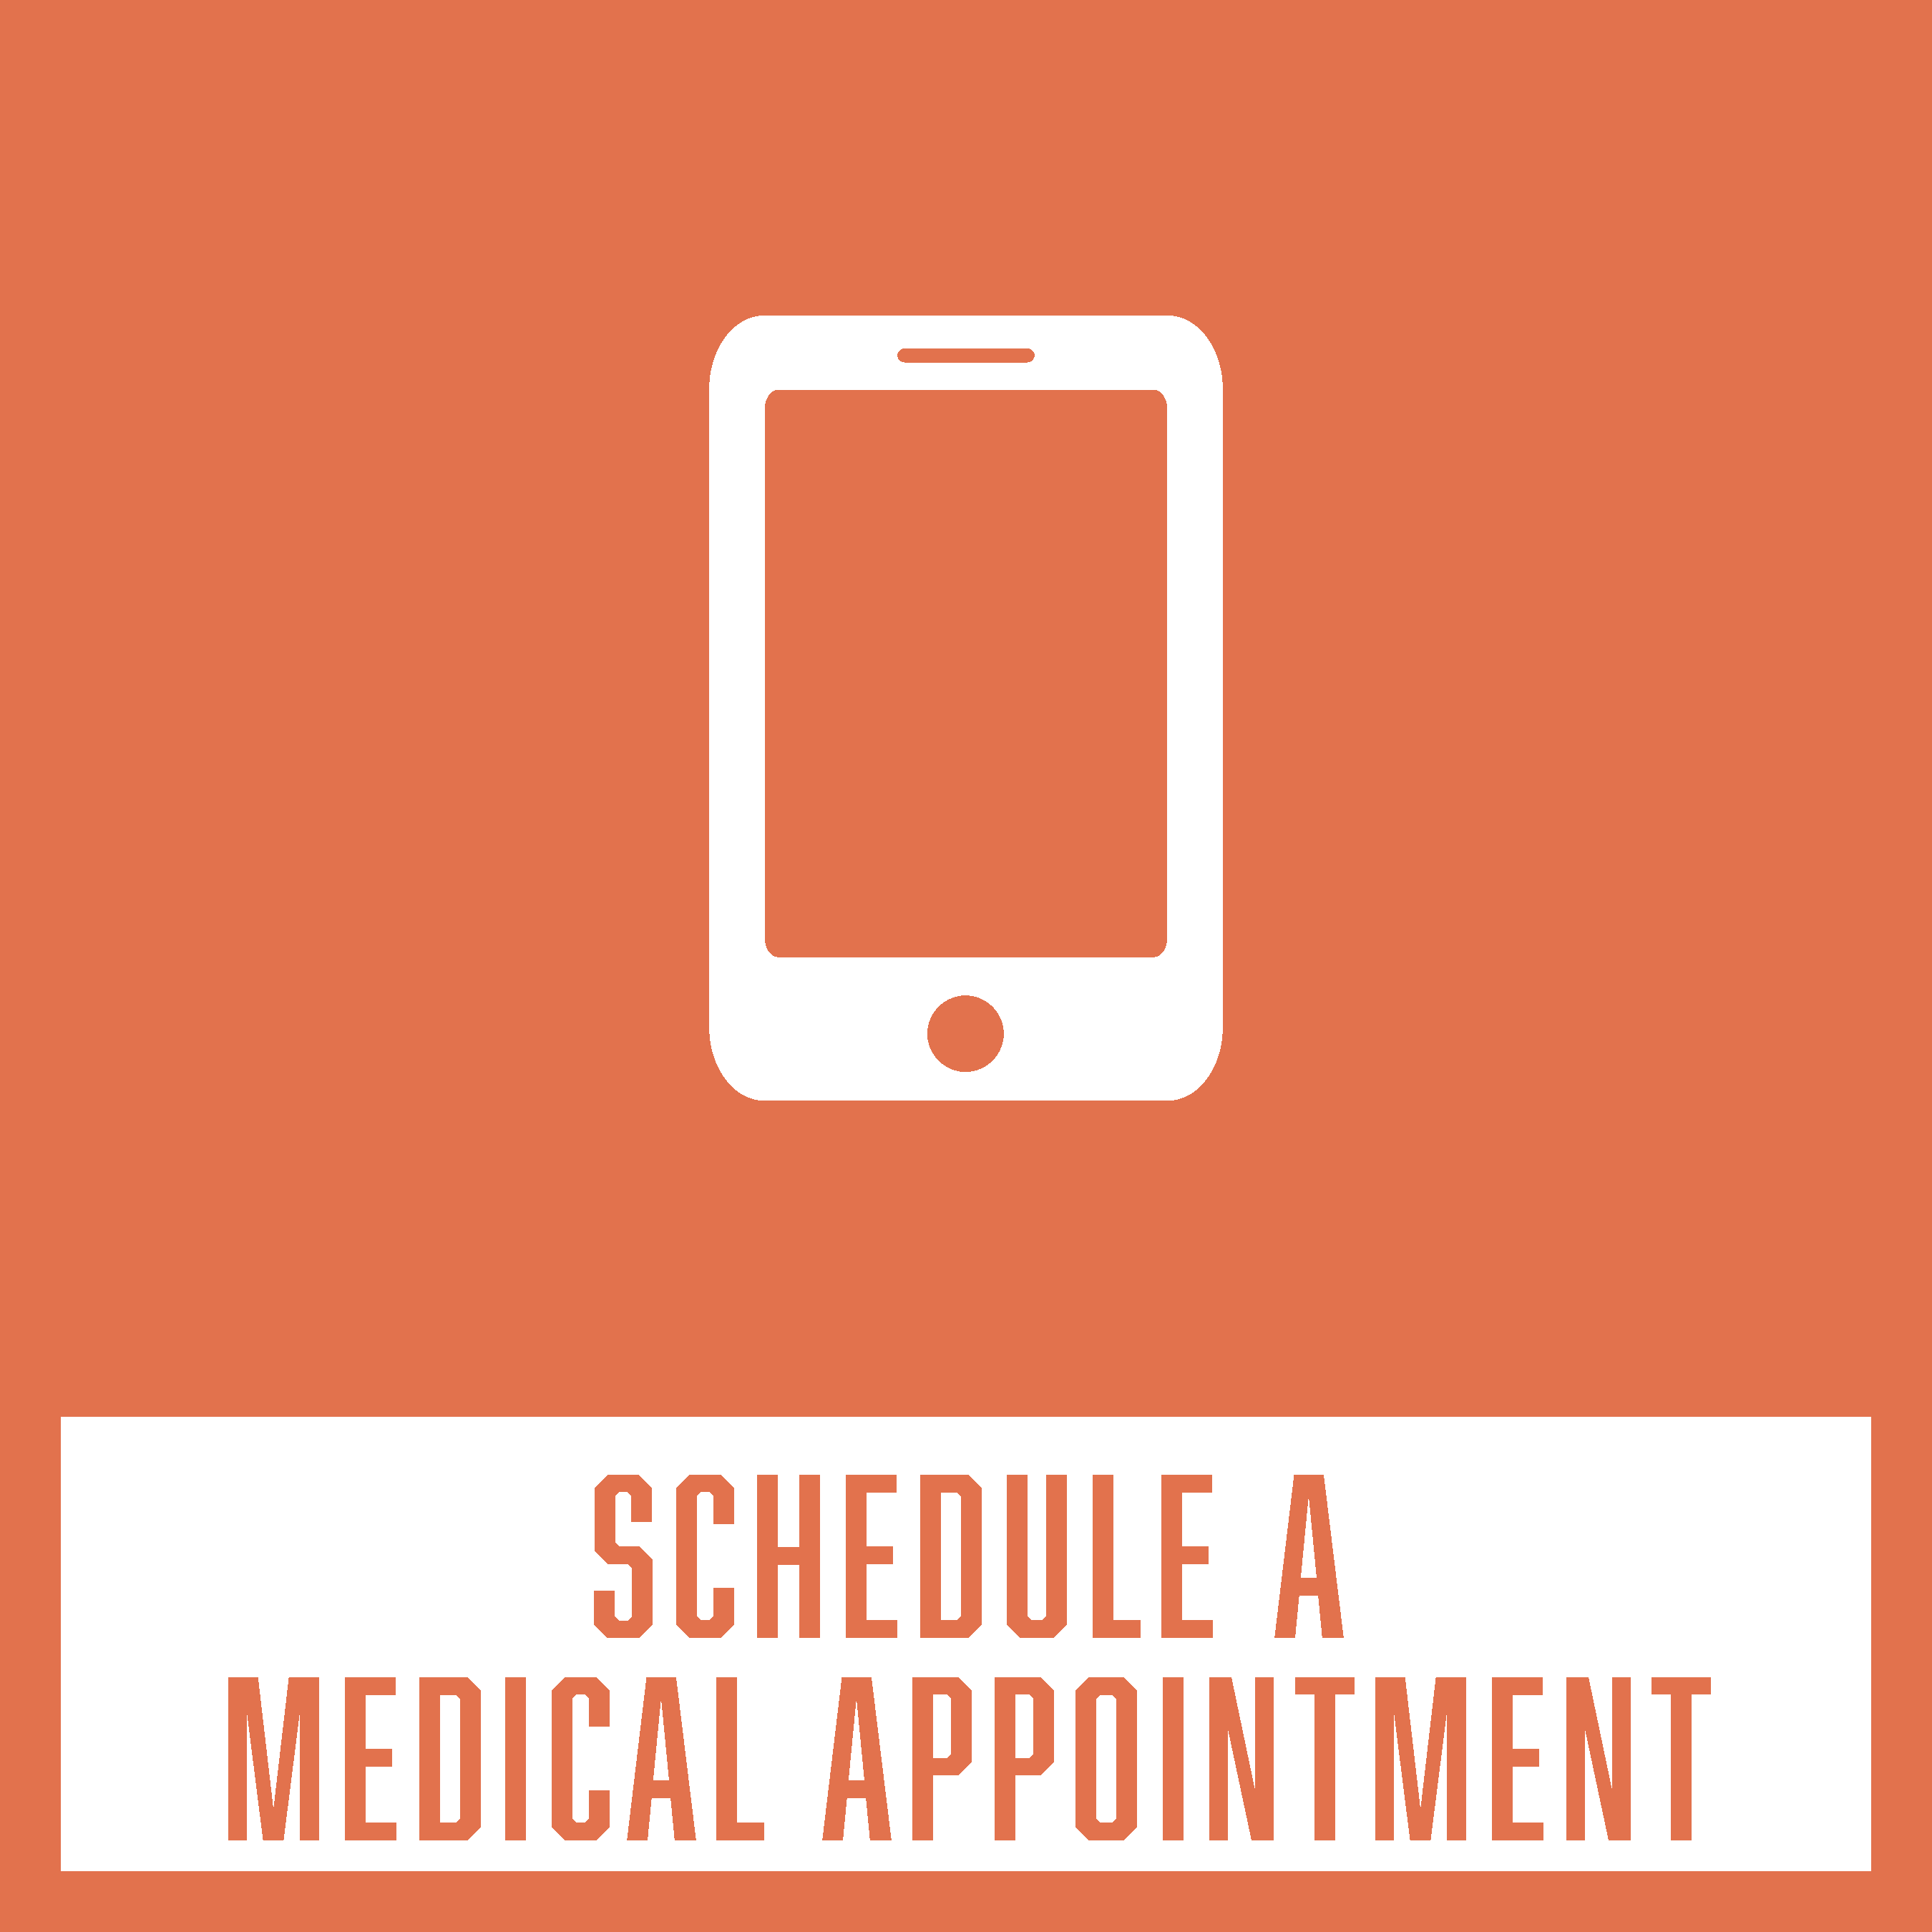 Webpage tab to schedule a medical appointment with Campus Health & Wellbeing